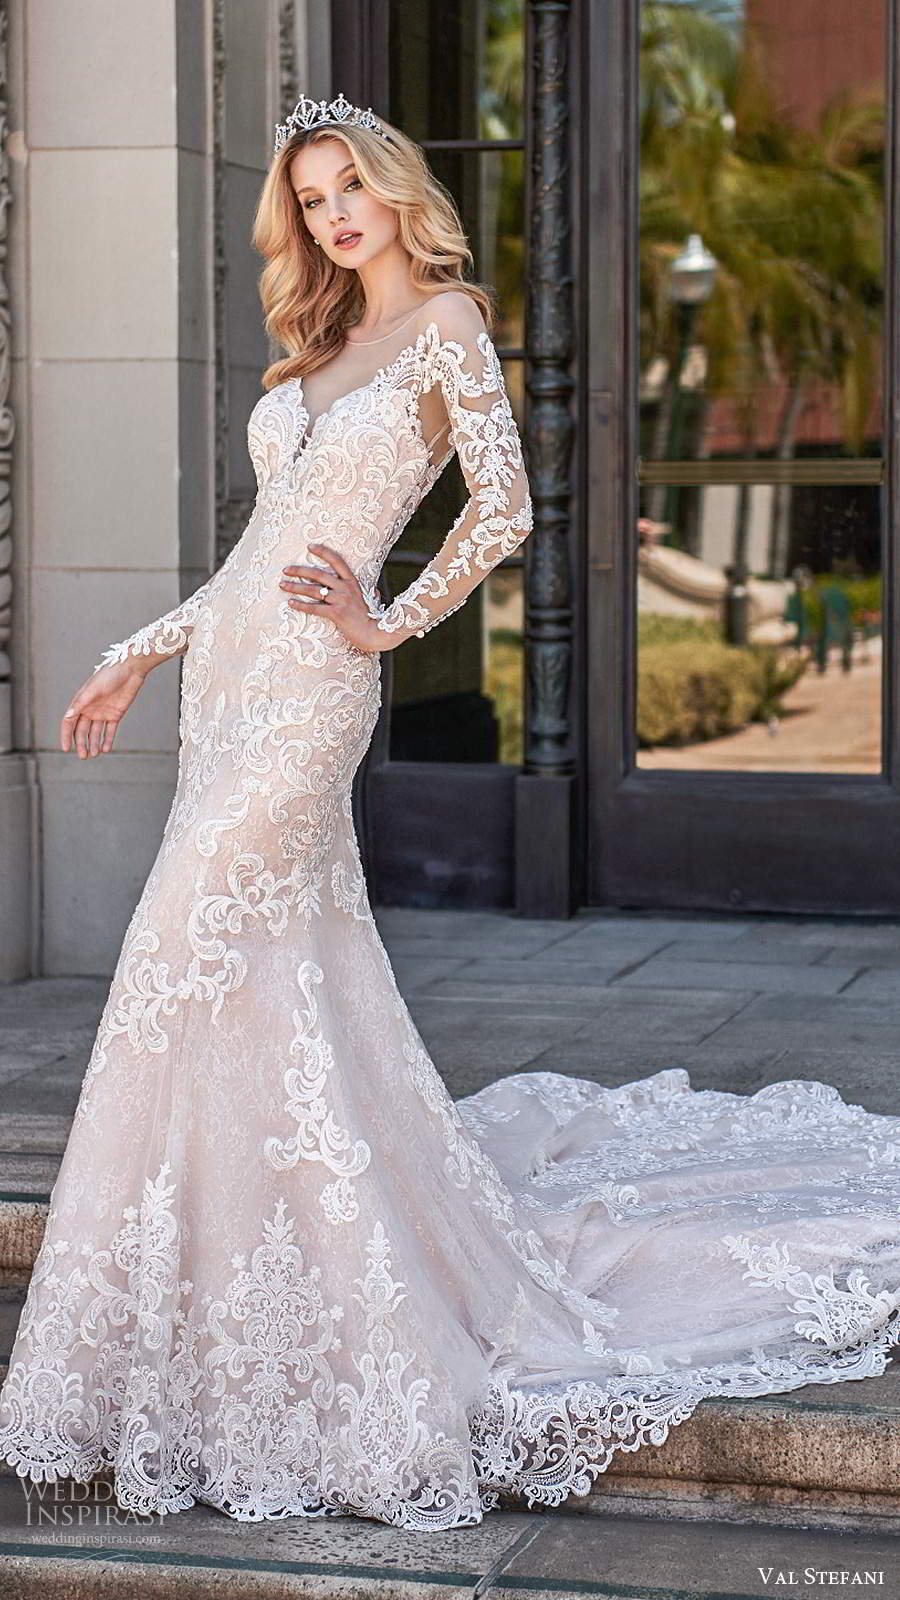 val stefani spring 2020 bridal illusion long sleeves sweetheart neckline fully embellished fit flare modified a line wedding dress illusion back cathedral train (1) mv